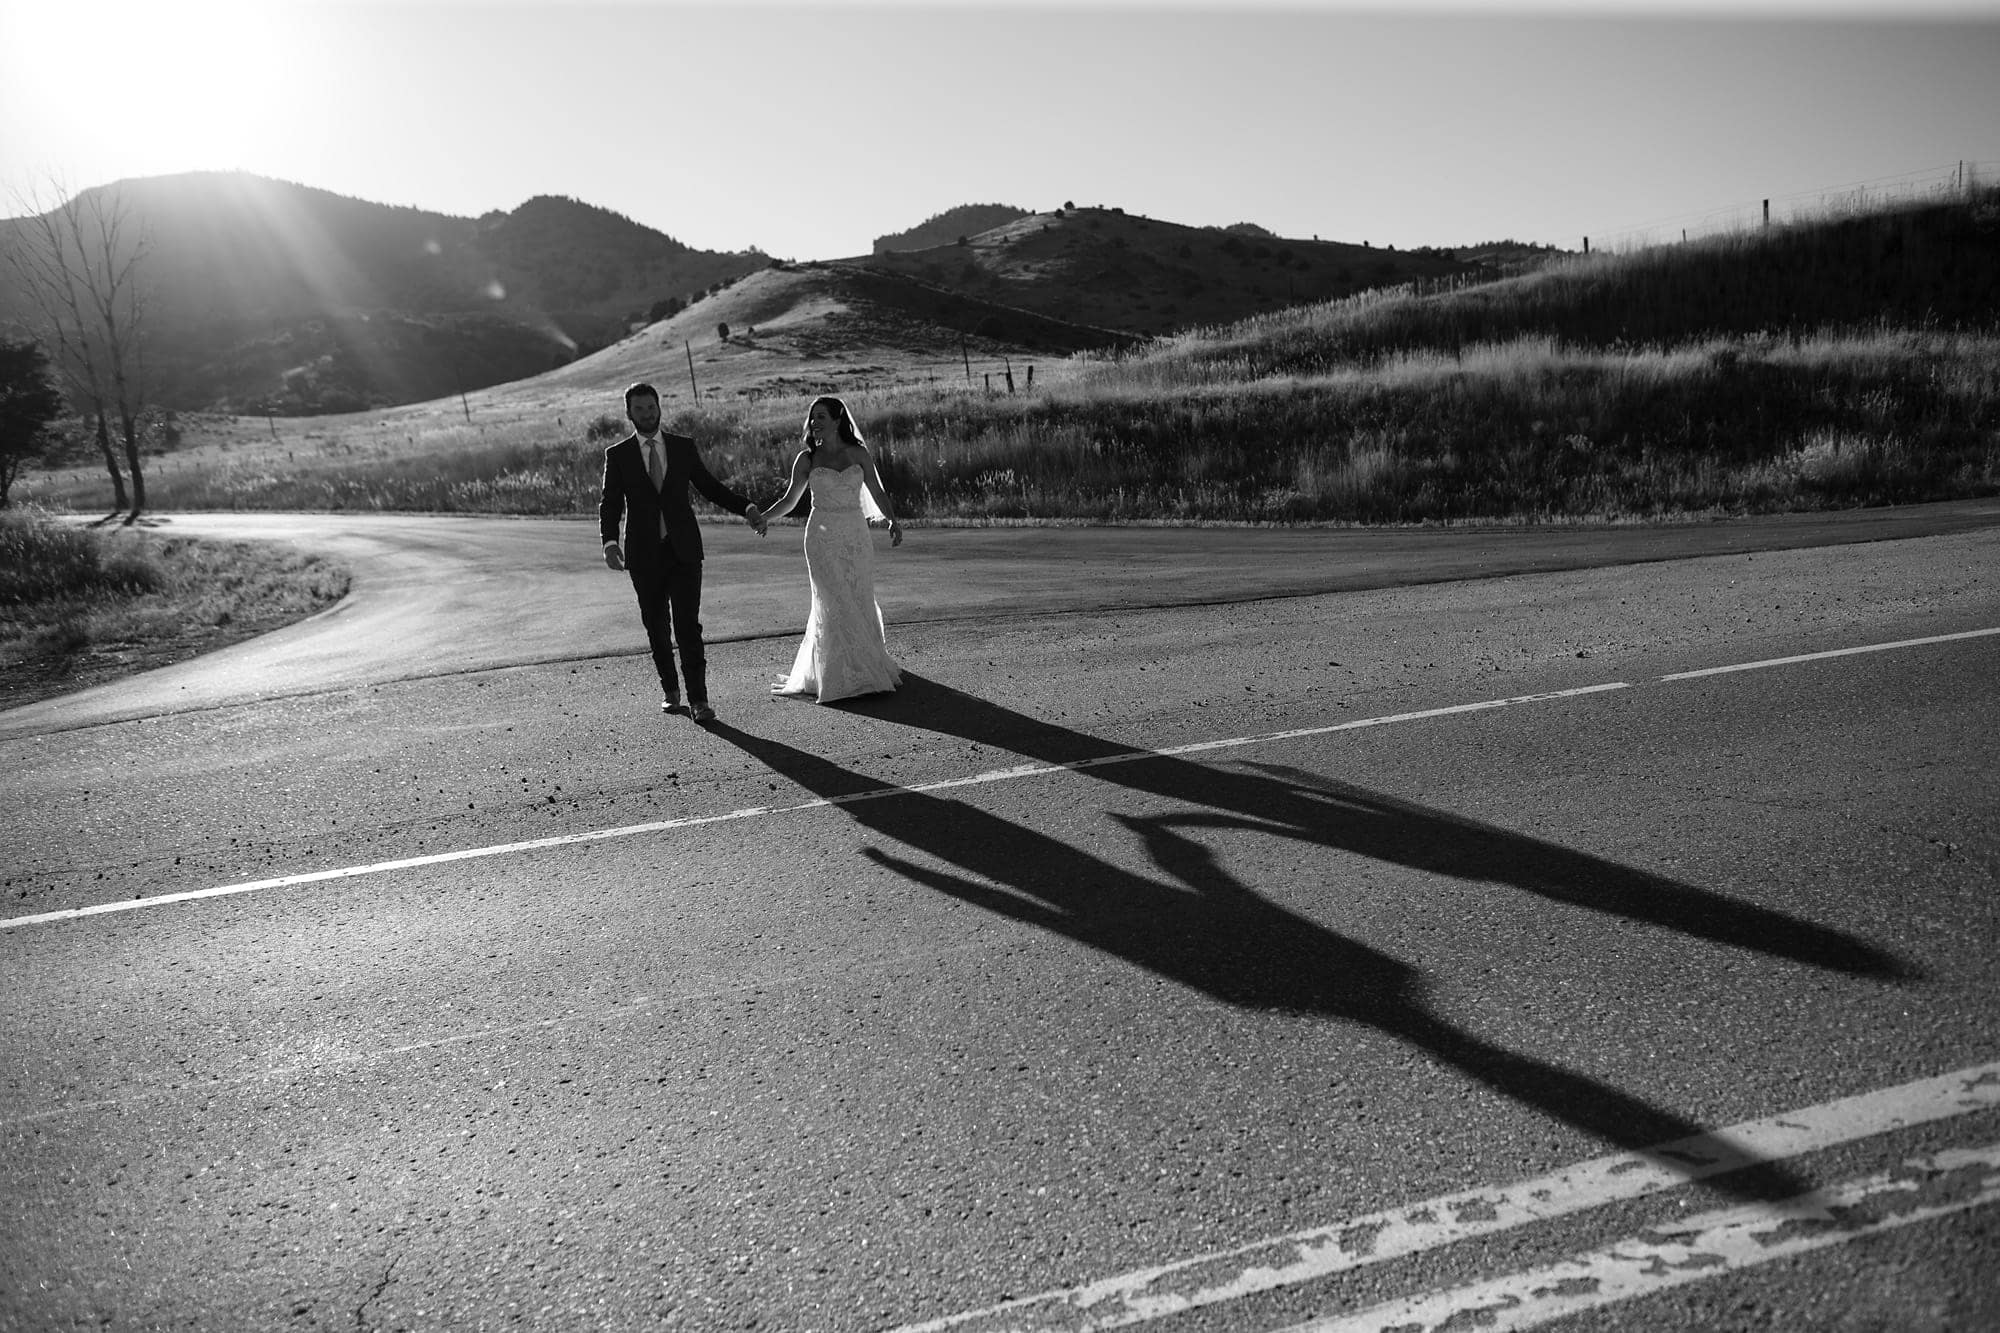 Blake leads Gina across the road during their wedding photos near The Fort restaurant in Morrison, Colorado after getting married at Willow Ridge Manor